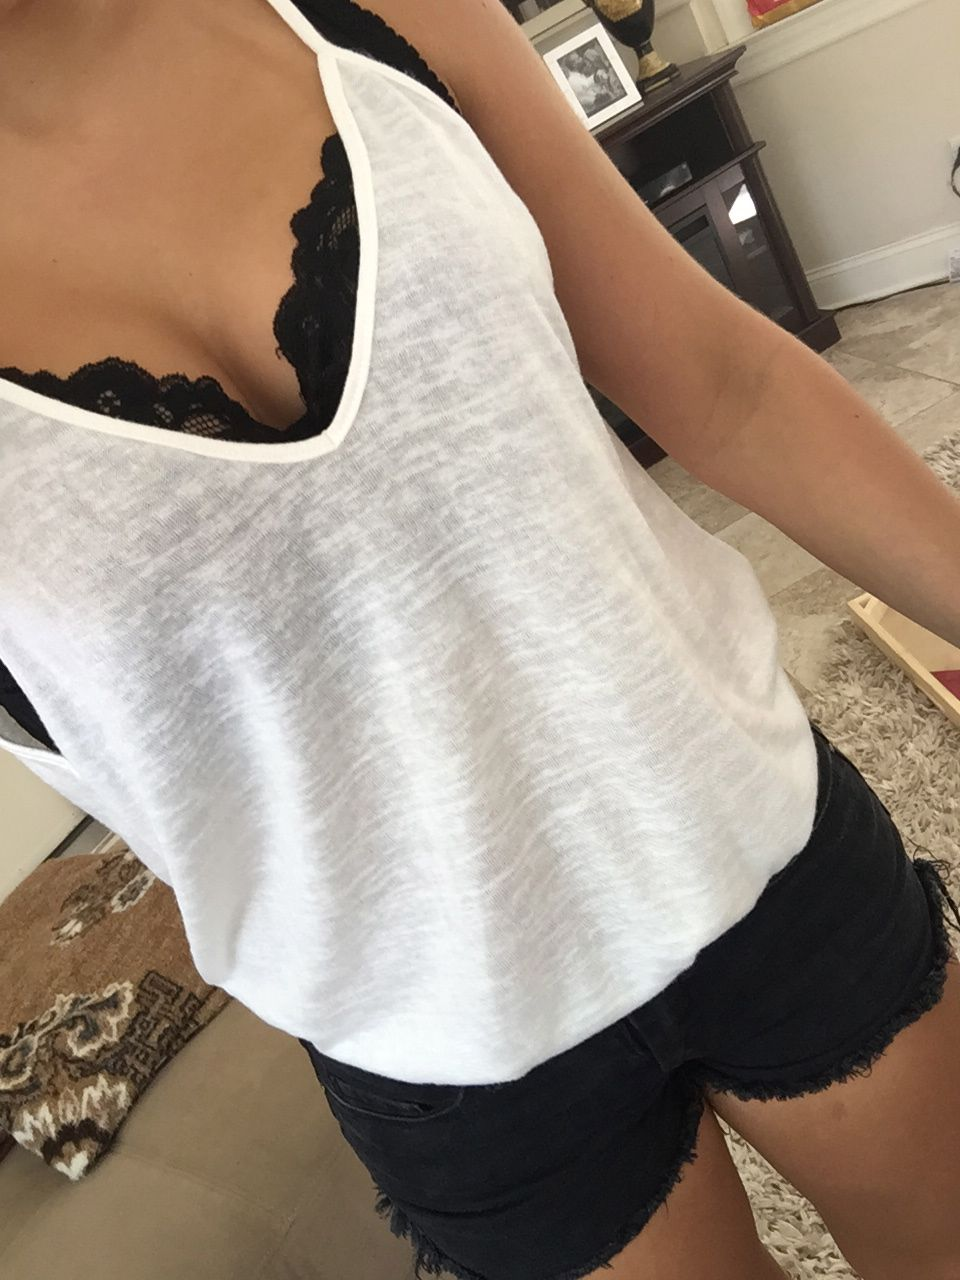 01544b66793eb Bralette outfit